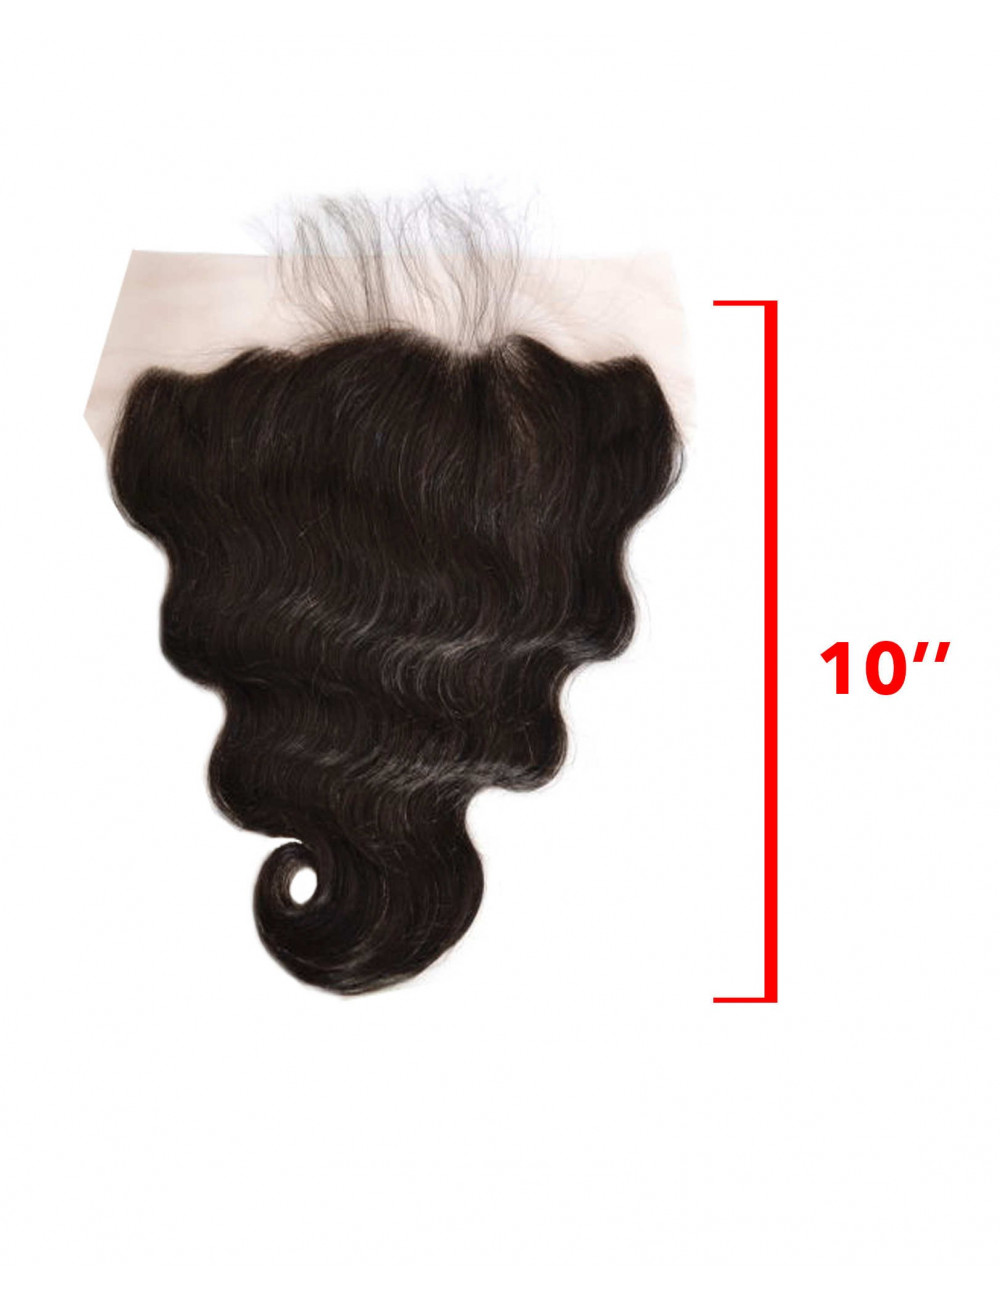 Mèches indiennes lace frontal ondulée 10""